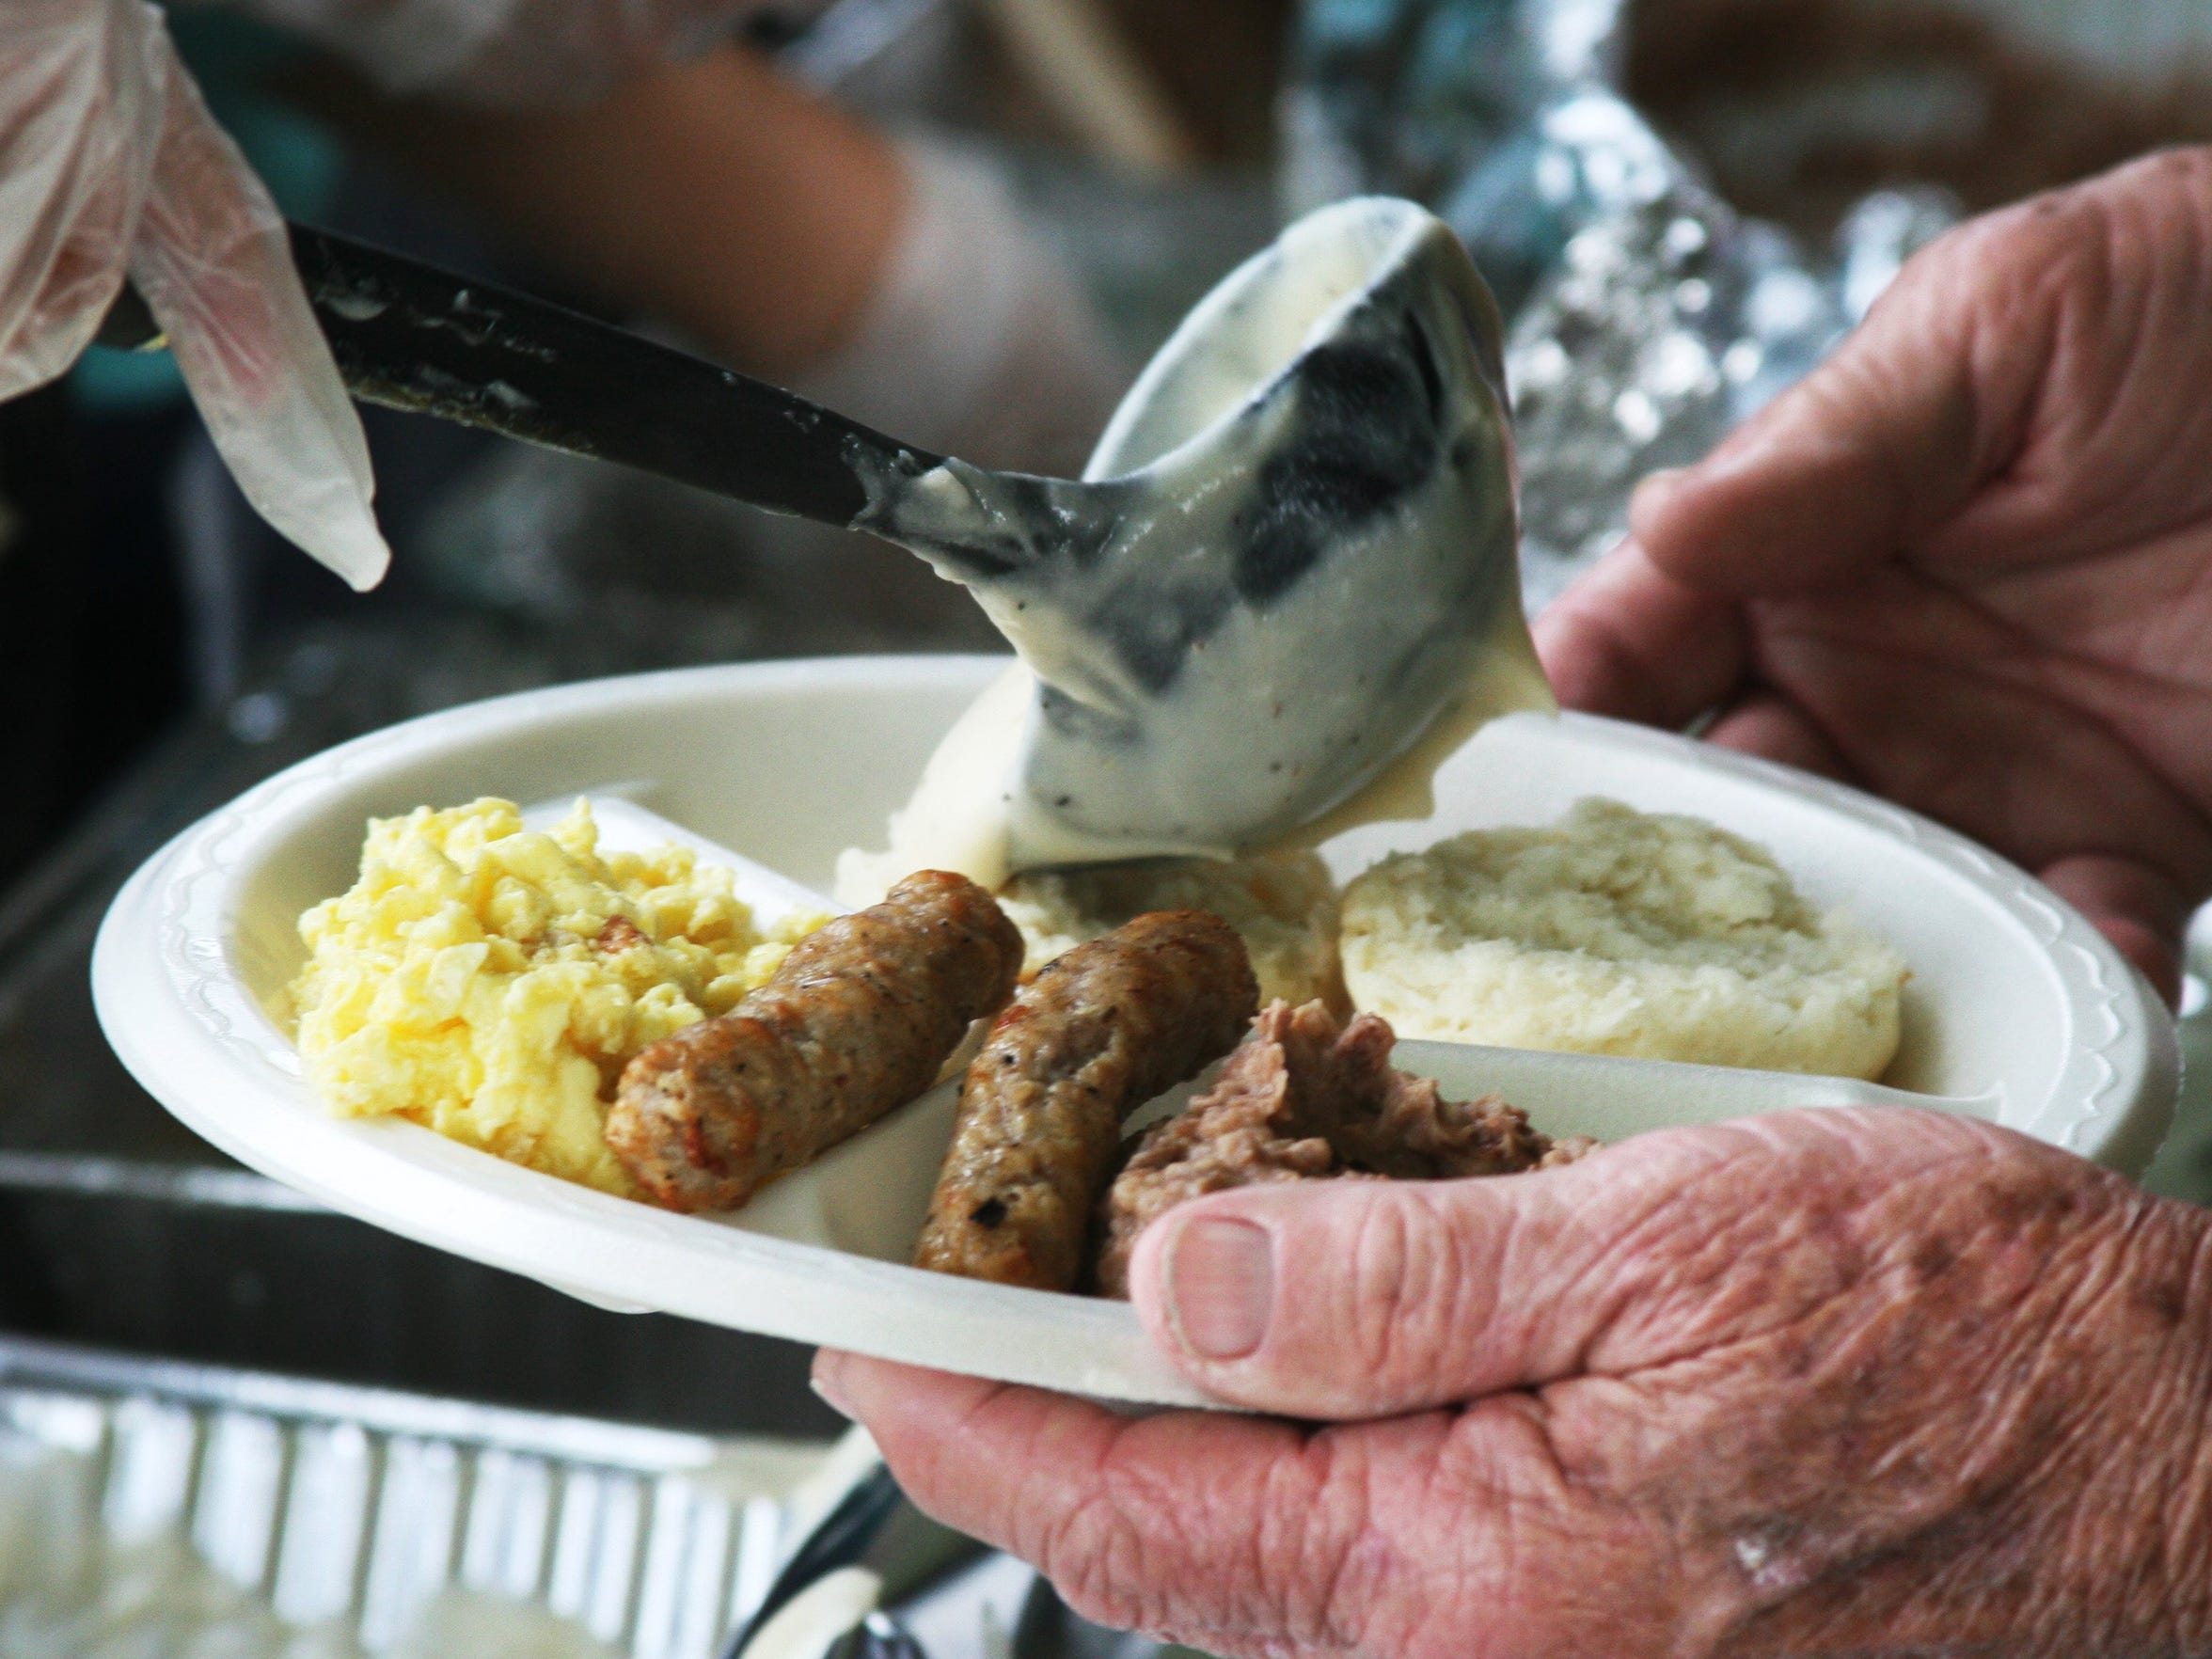 A volunteer ladles gravy over the biscuits during the annual Ranch Hand Breakfast at King Ranch.